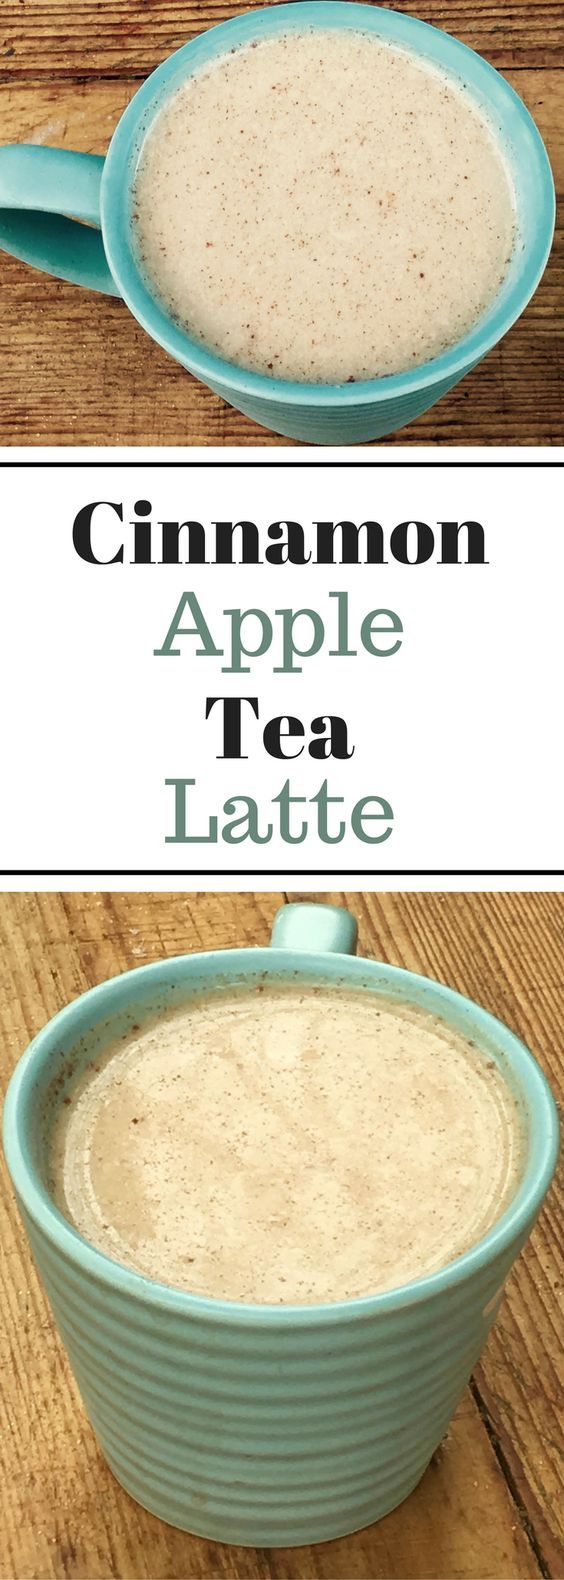 Yummy Cinnamon Apple Tea Latte | Montana Happy